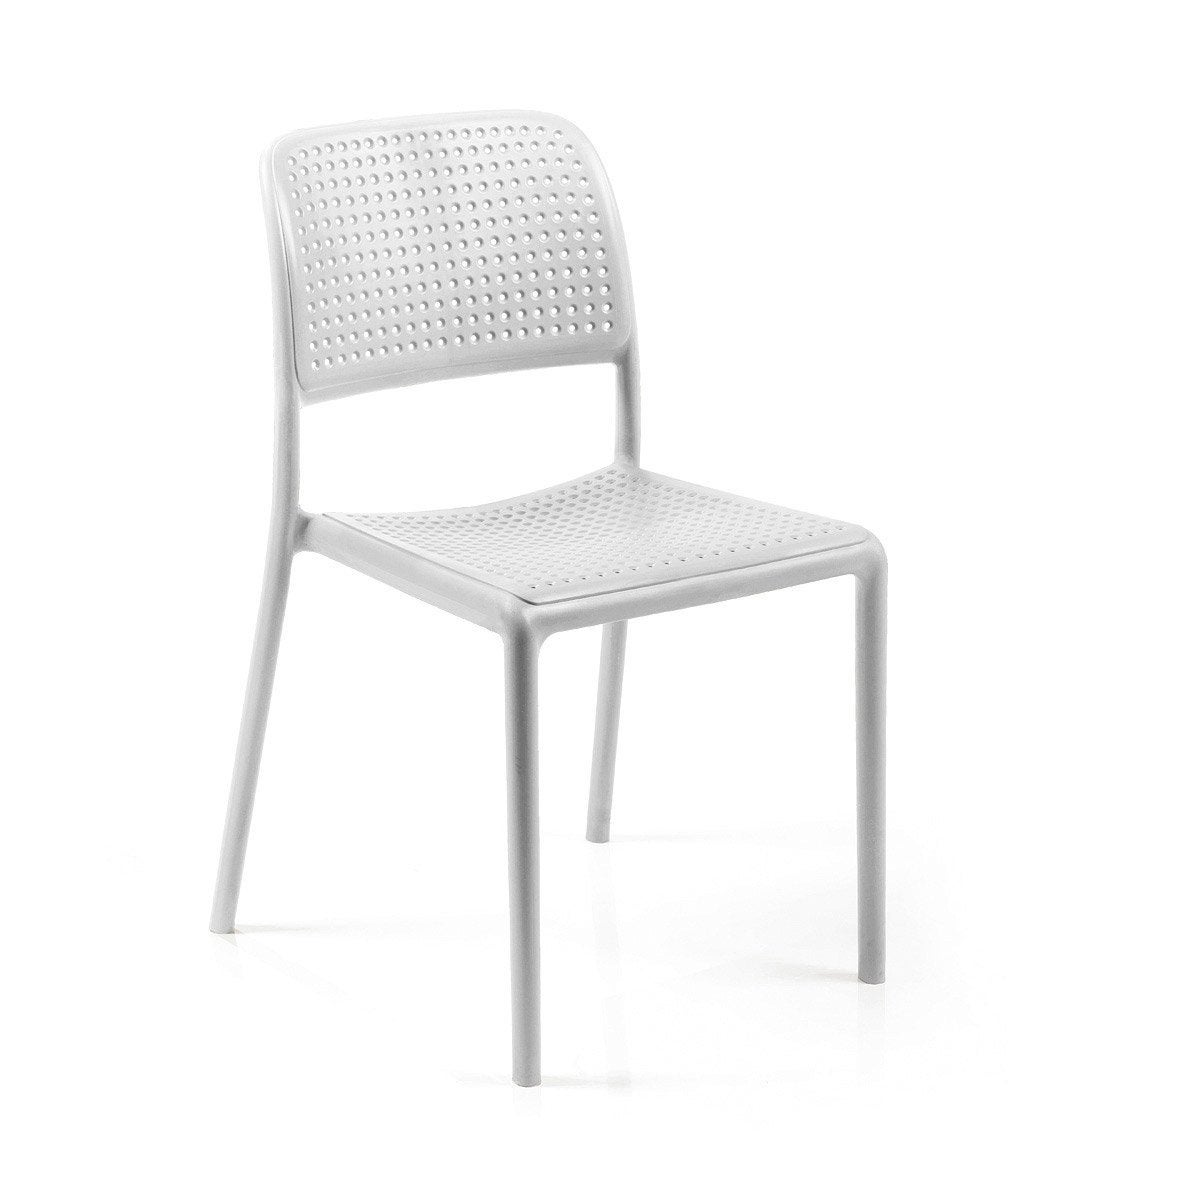 Chaise plastique transparent leroy merlin - Chaise douche leroy merlin ...